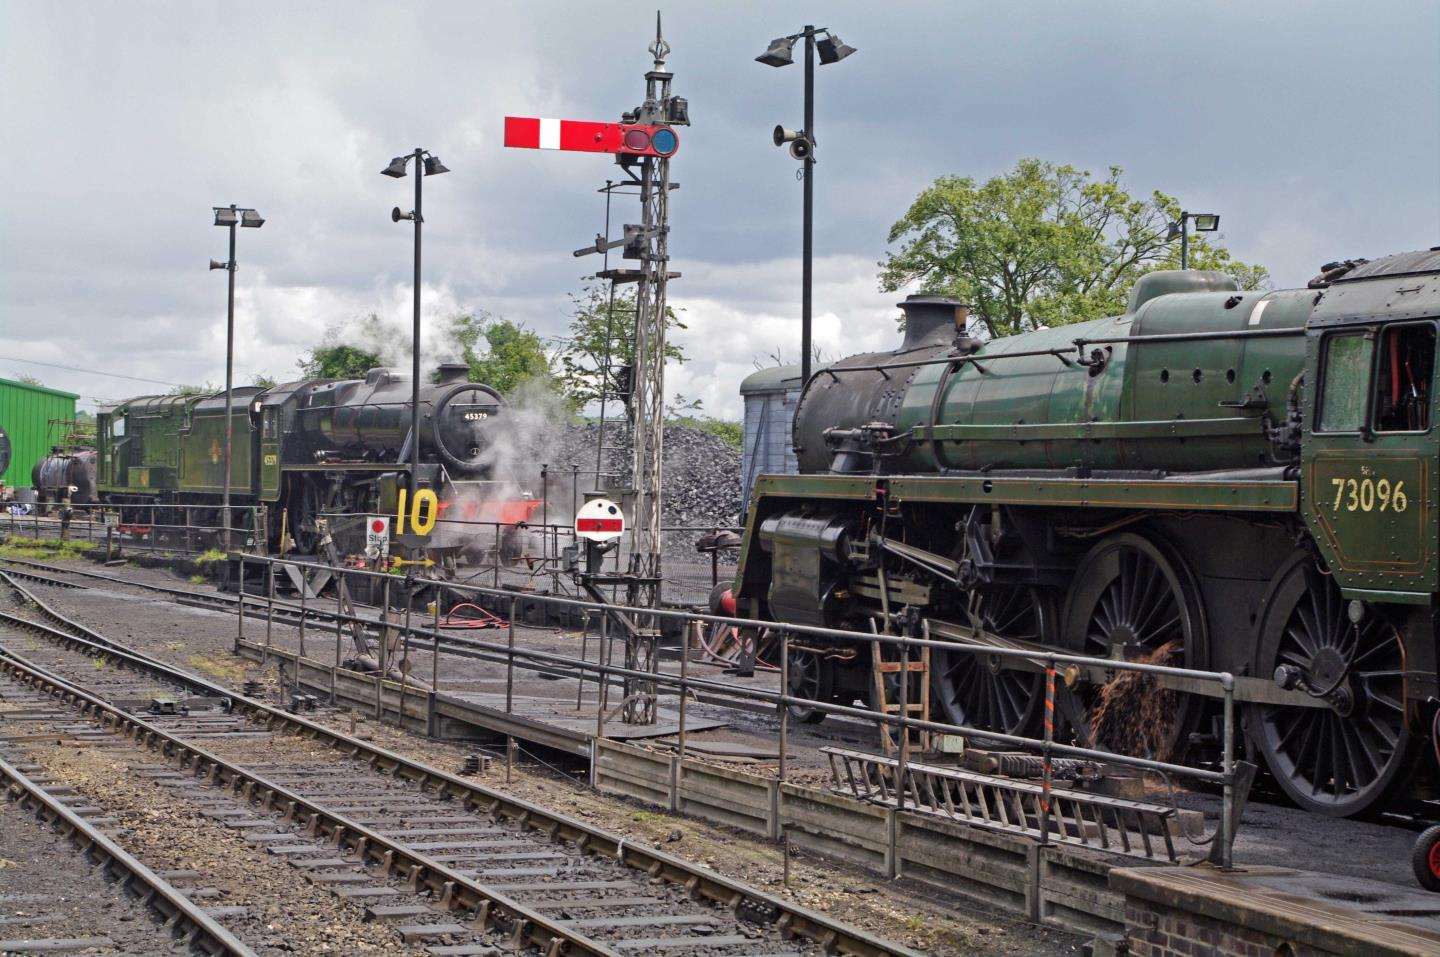 45379 and 73096 at Ropley in 2011 // Credit Preserved British Steam Locomotives